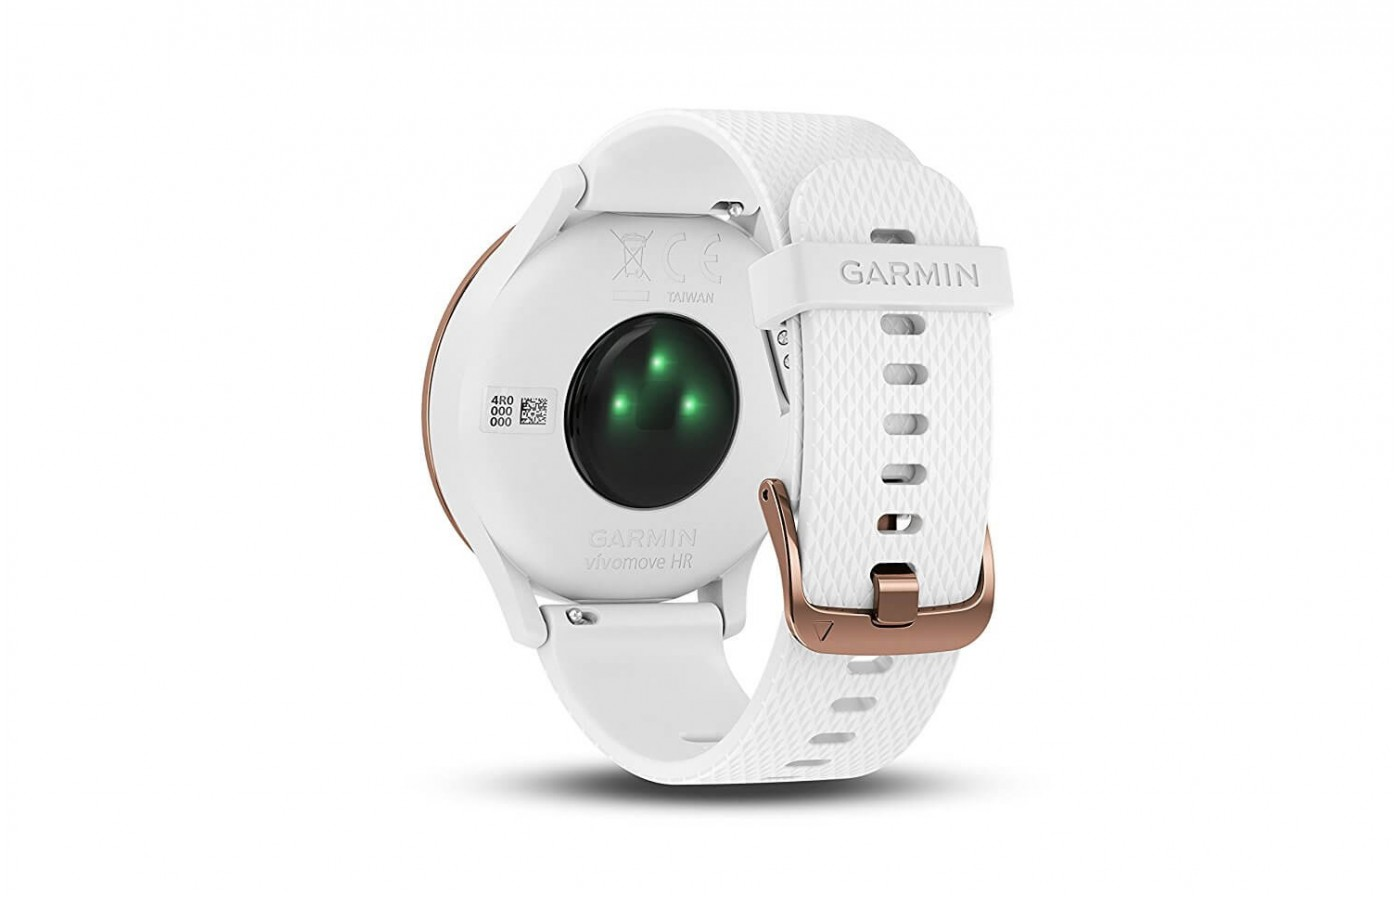 The Garmin Vivomove HR measures stress levels using heart rate variability